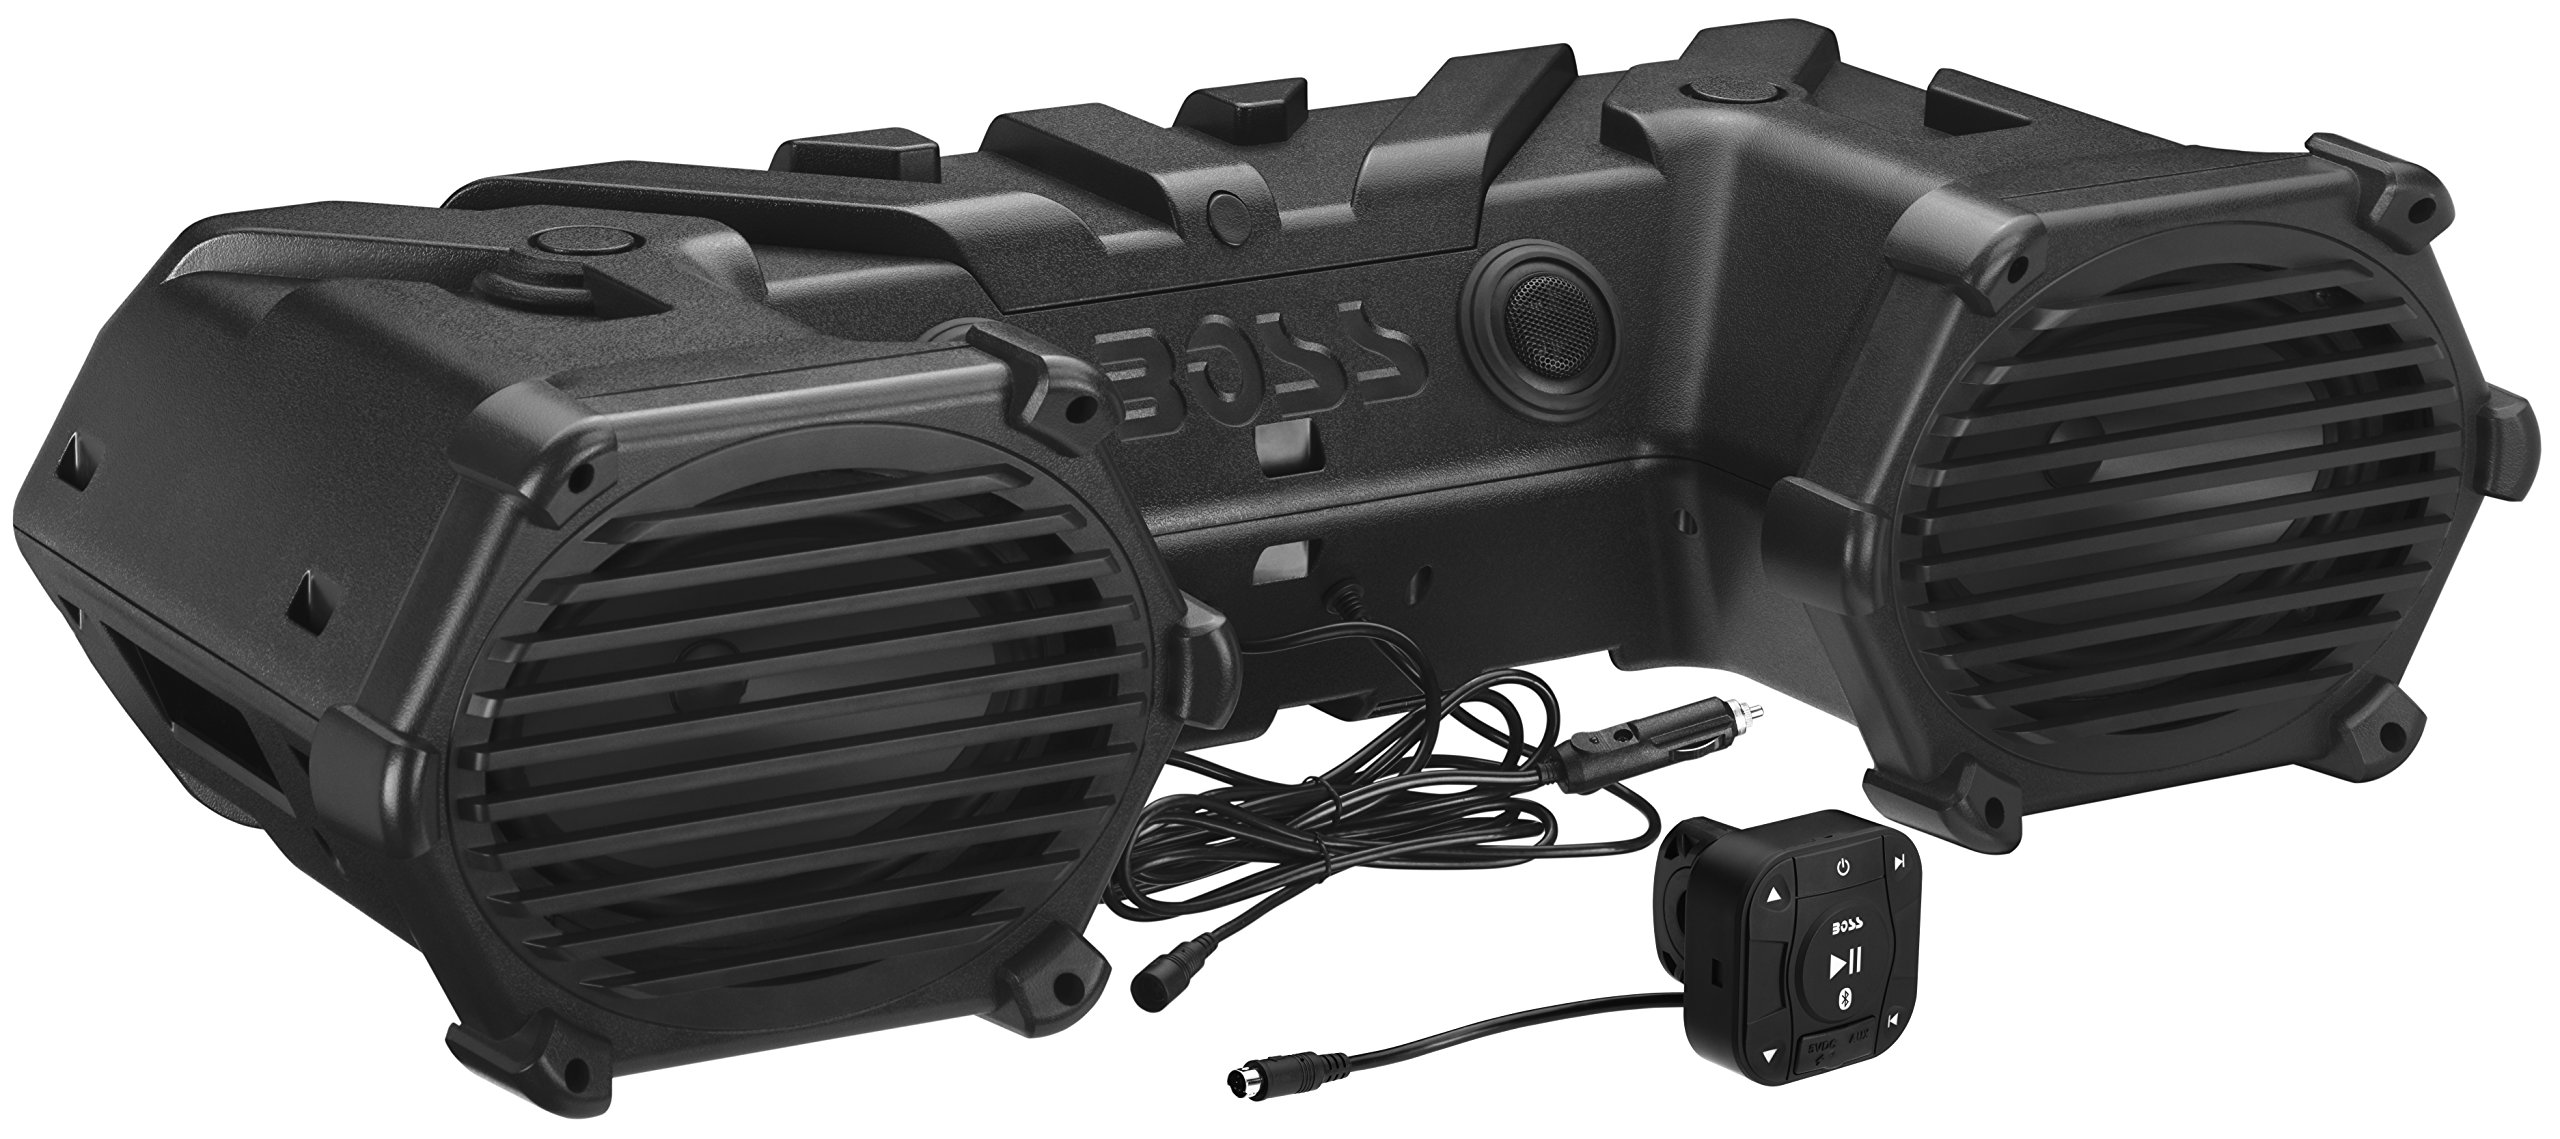 BOSS Audio ATVB69LED Bluetooth, Amplified,  ATV/UTV Sound System, Weather-Proof Marine Grade, Bluetooth Remote, 12 Volt Application Friendly by BOSS Audio